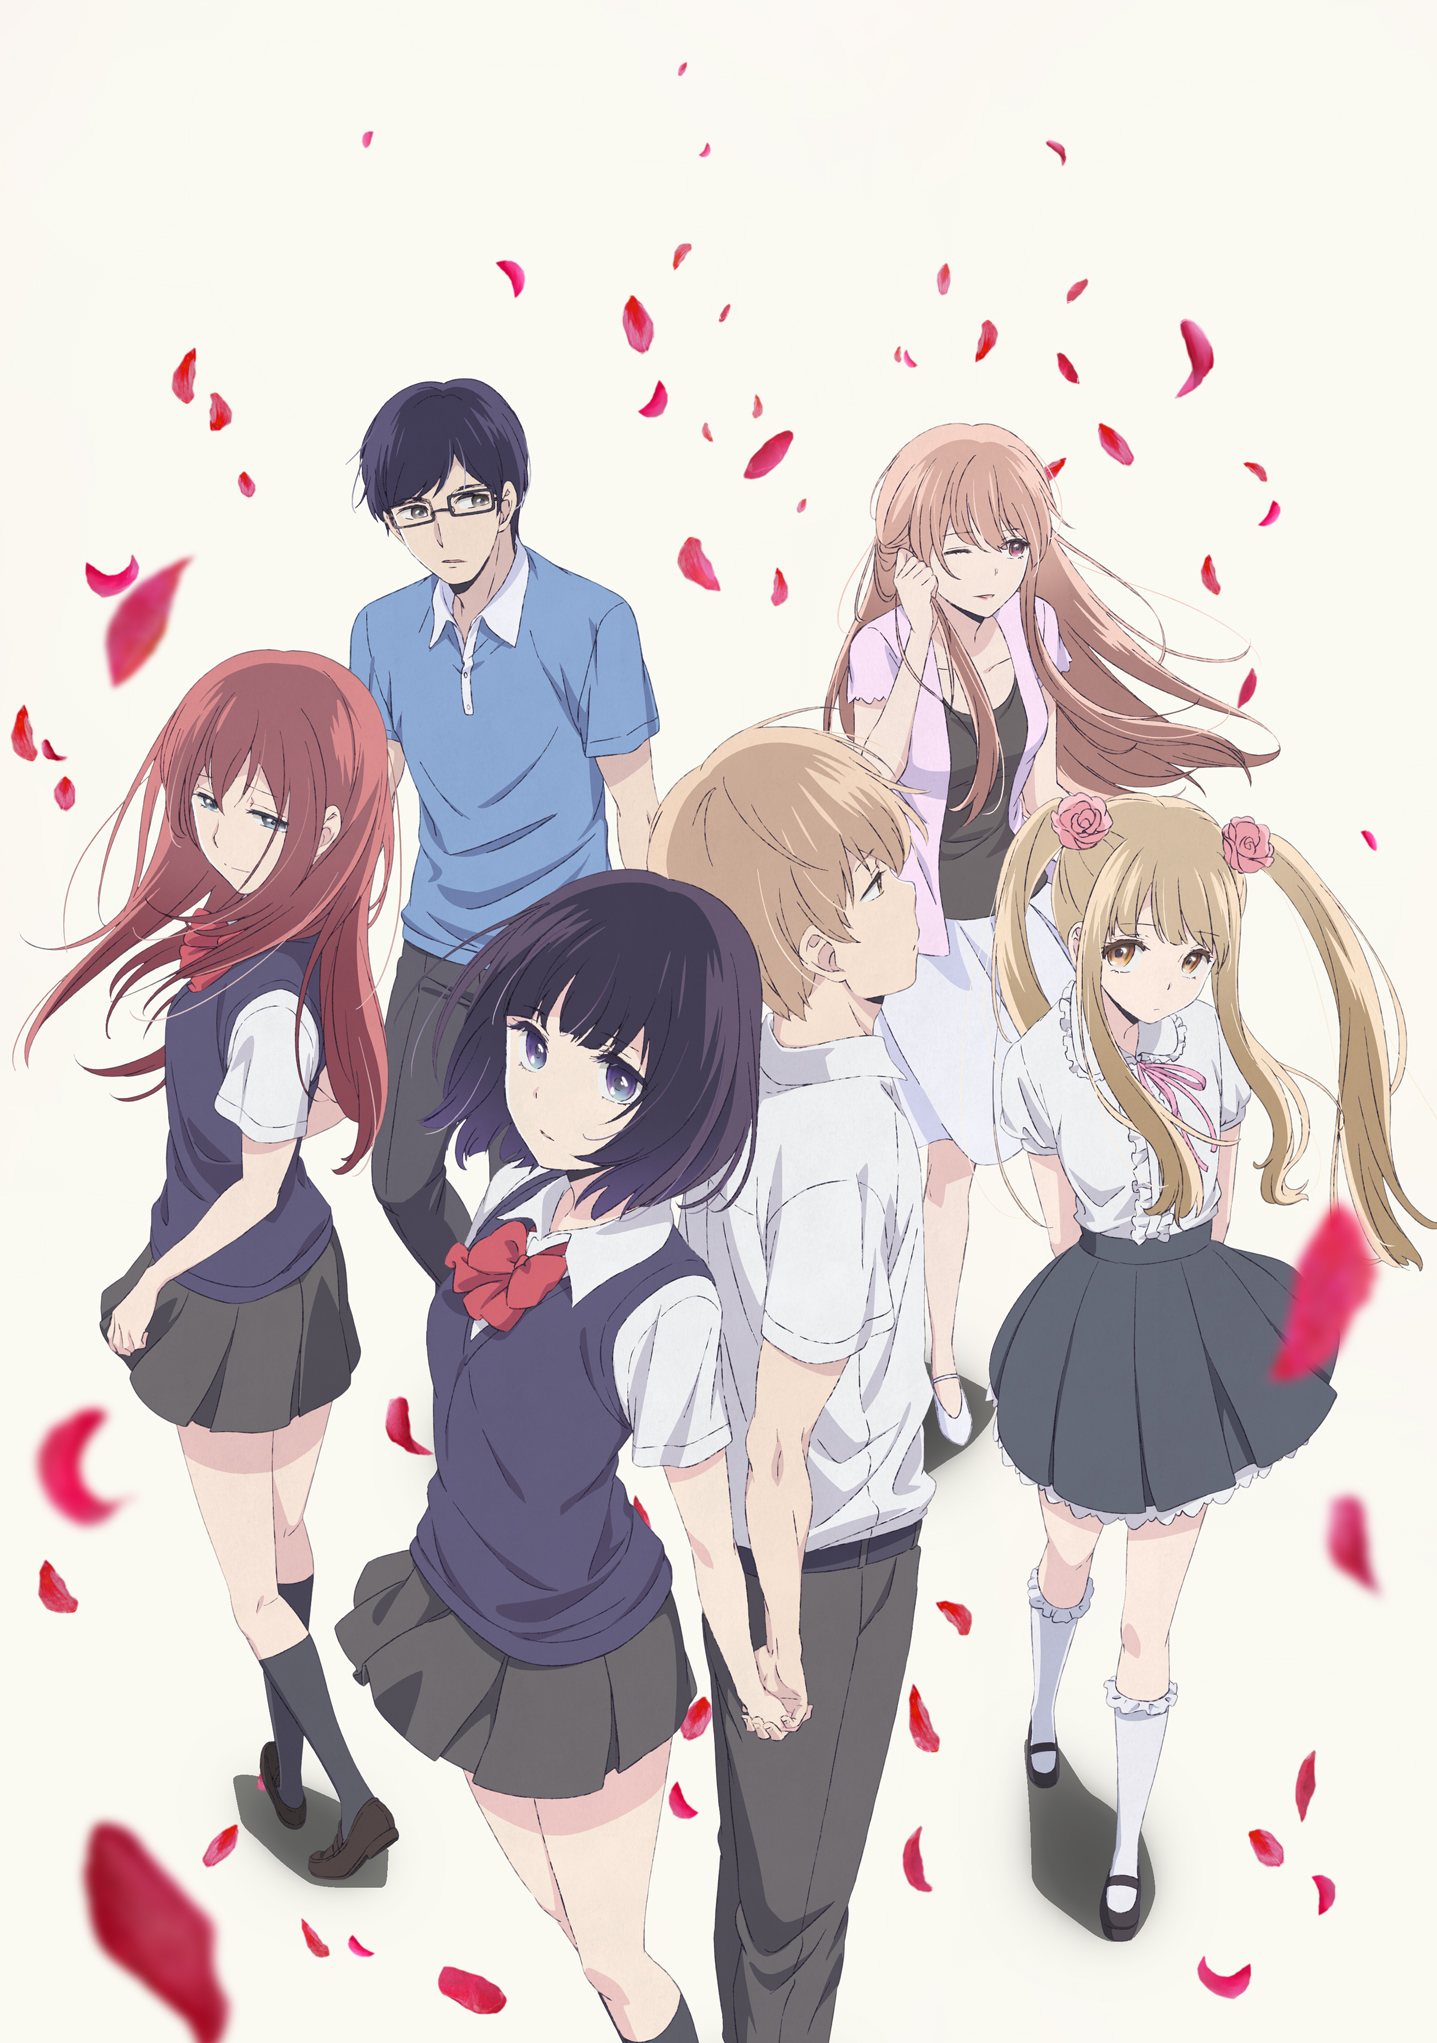 15 [Similar Anime] Like Scum's Wish